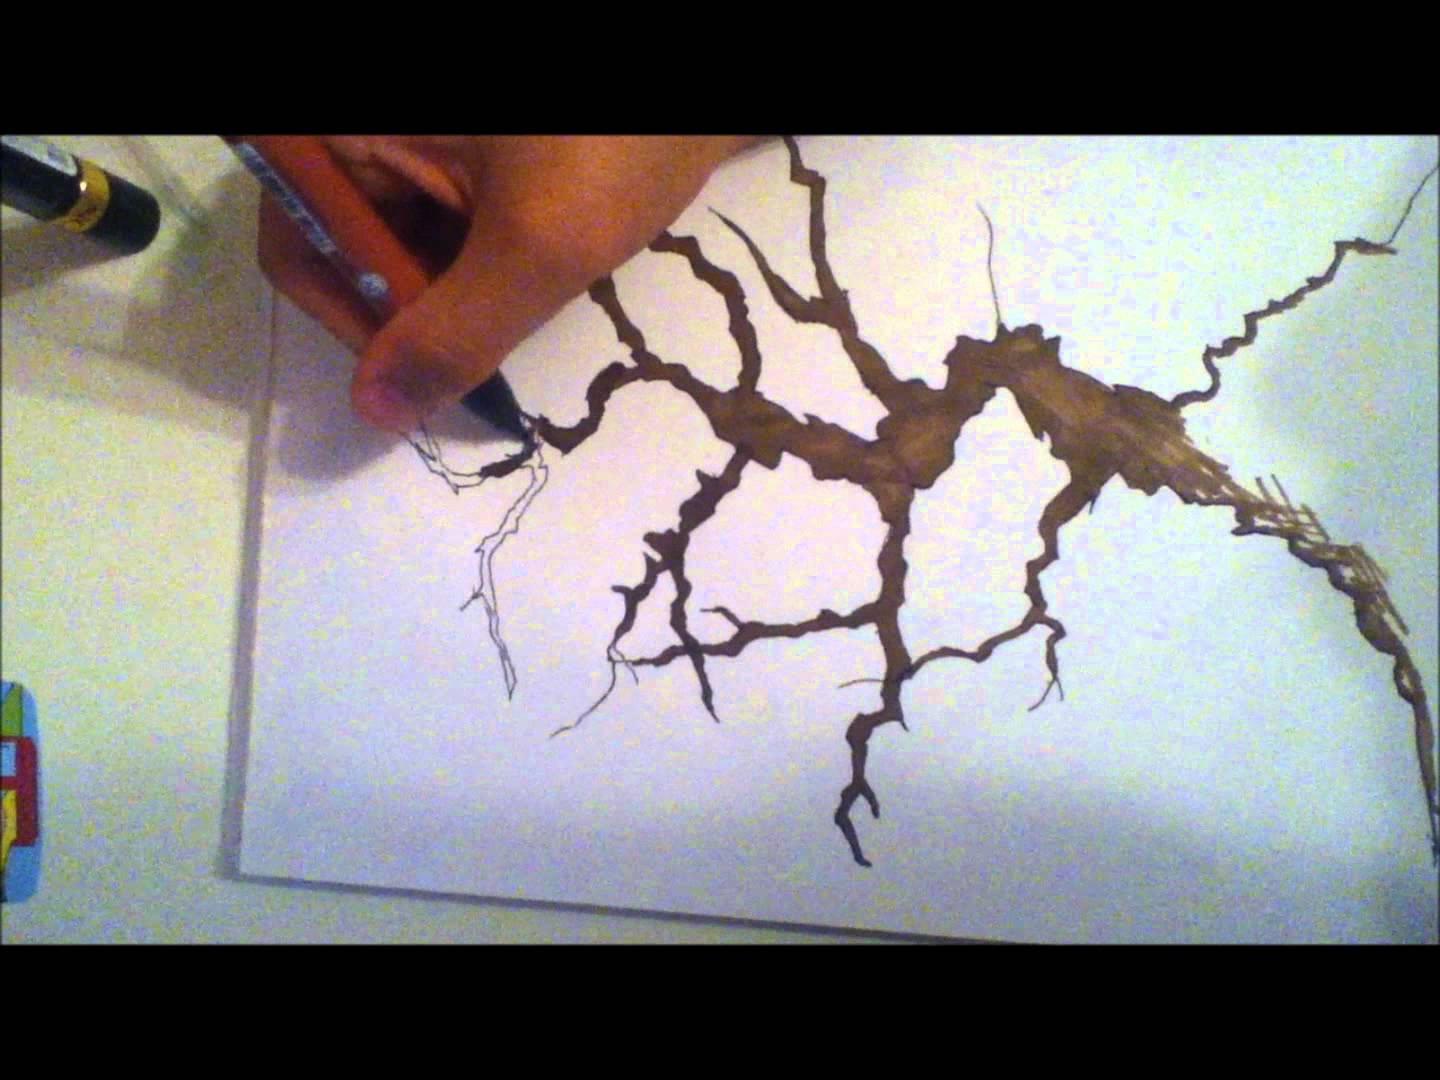 Drawn sakura blossom pencil step by step Drawing blossom cherry YouTube tree